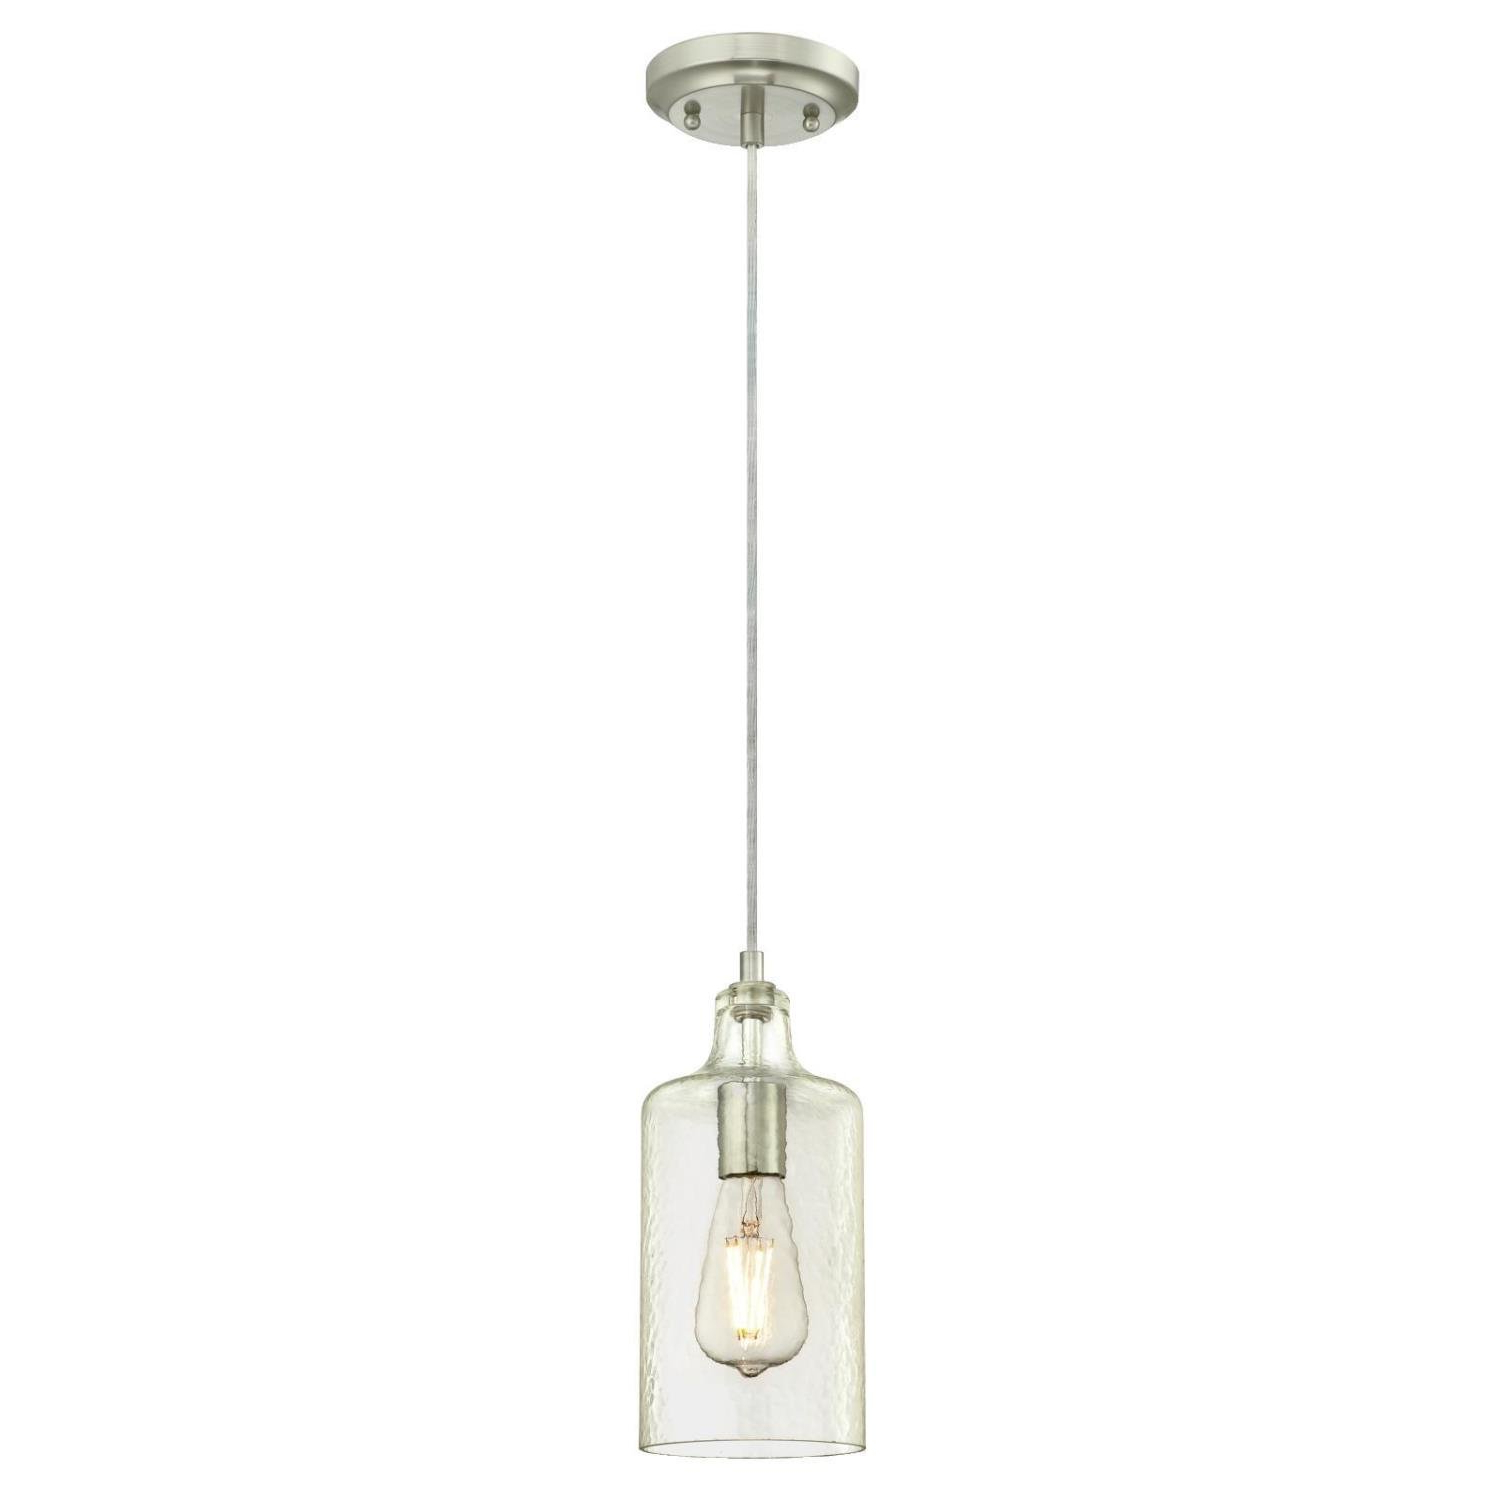 Jayce 1 Light Cylinder Pendant Intended For Well Known Moyer 1 Light Single Cylinder Pendants (View 7 of 25)